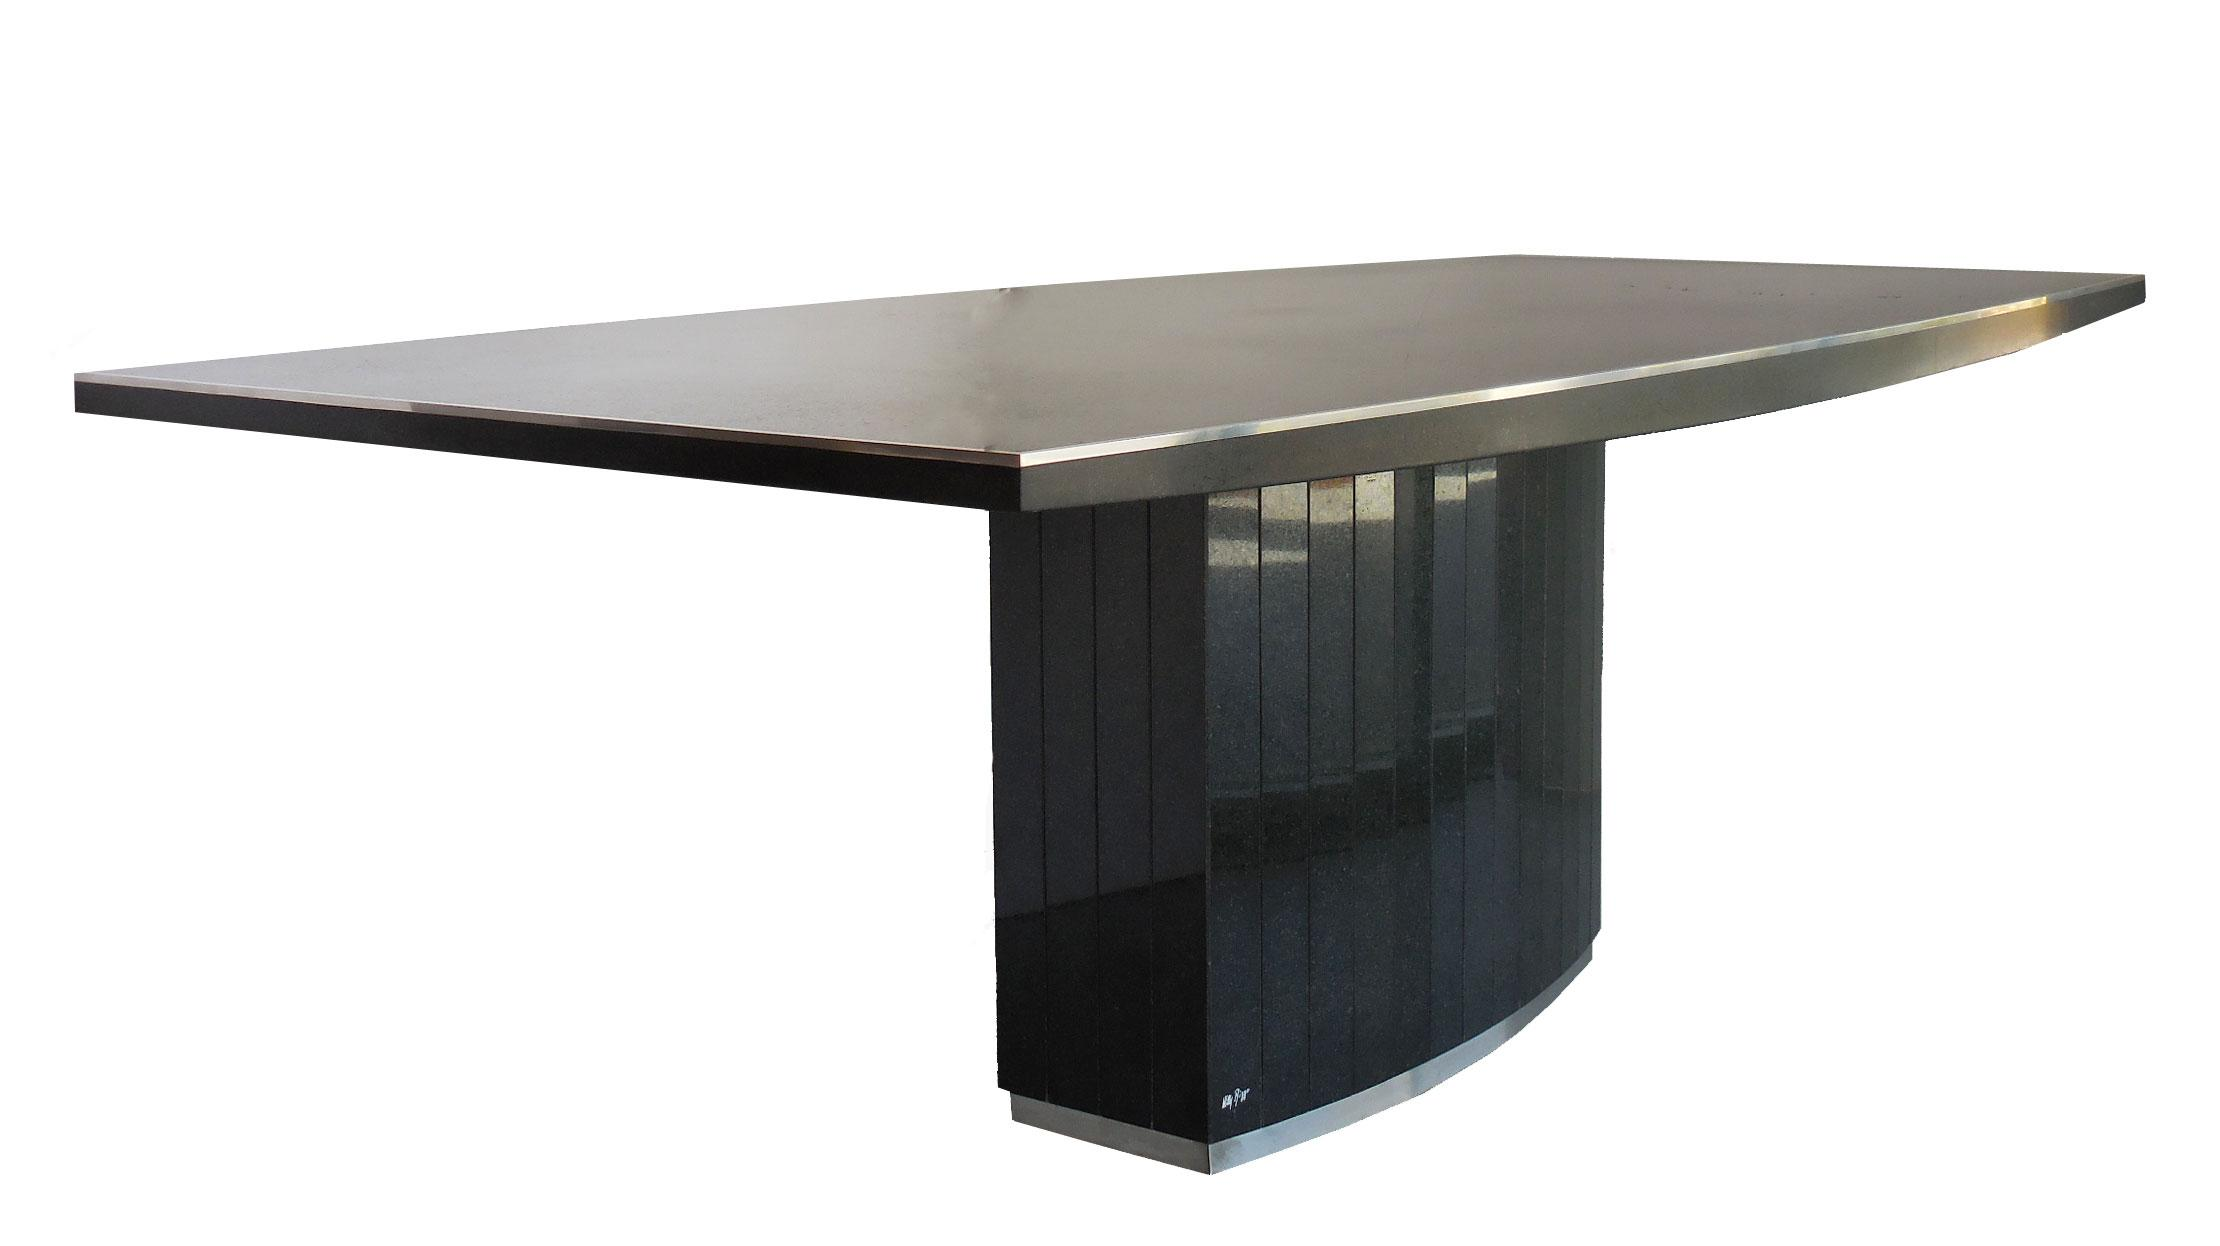 rare black granite and stainless steel dining table by willy rizzo image 6 of 8